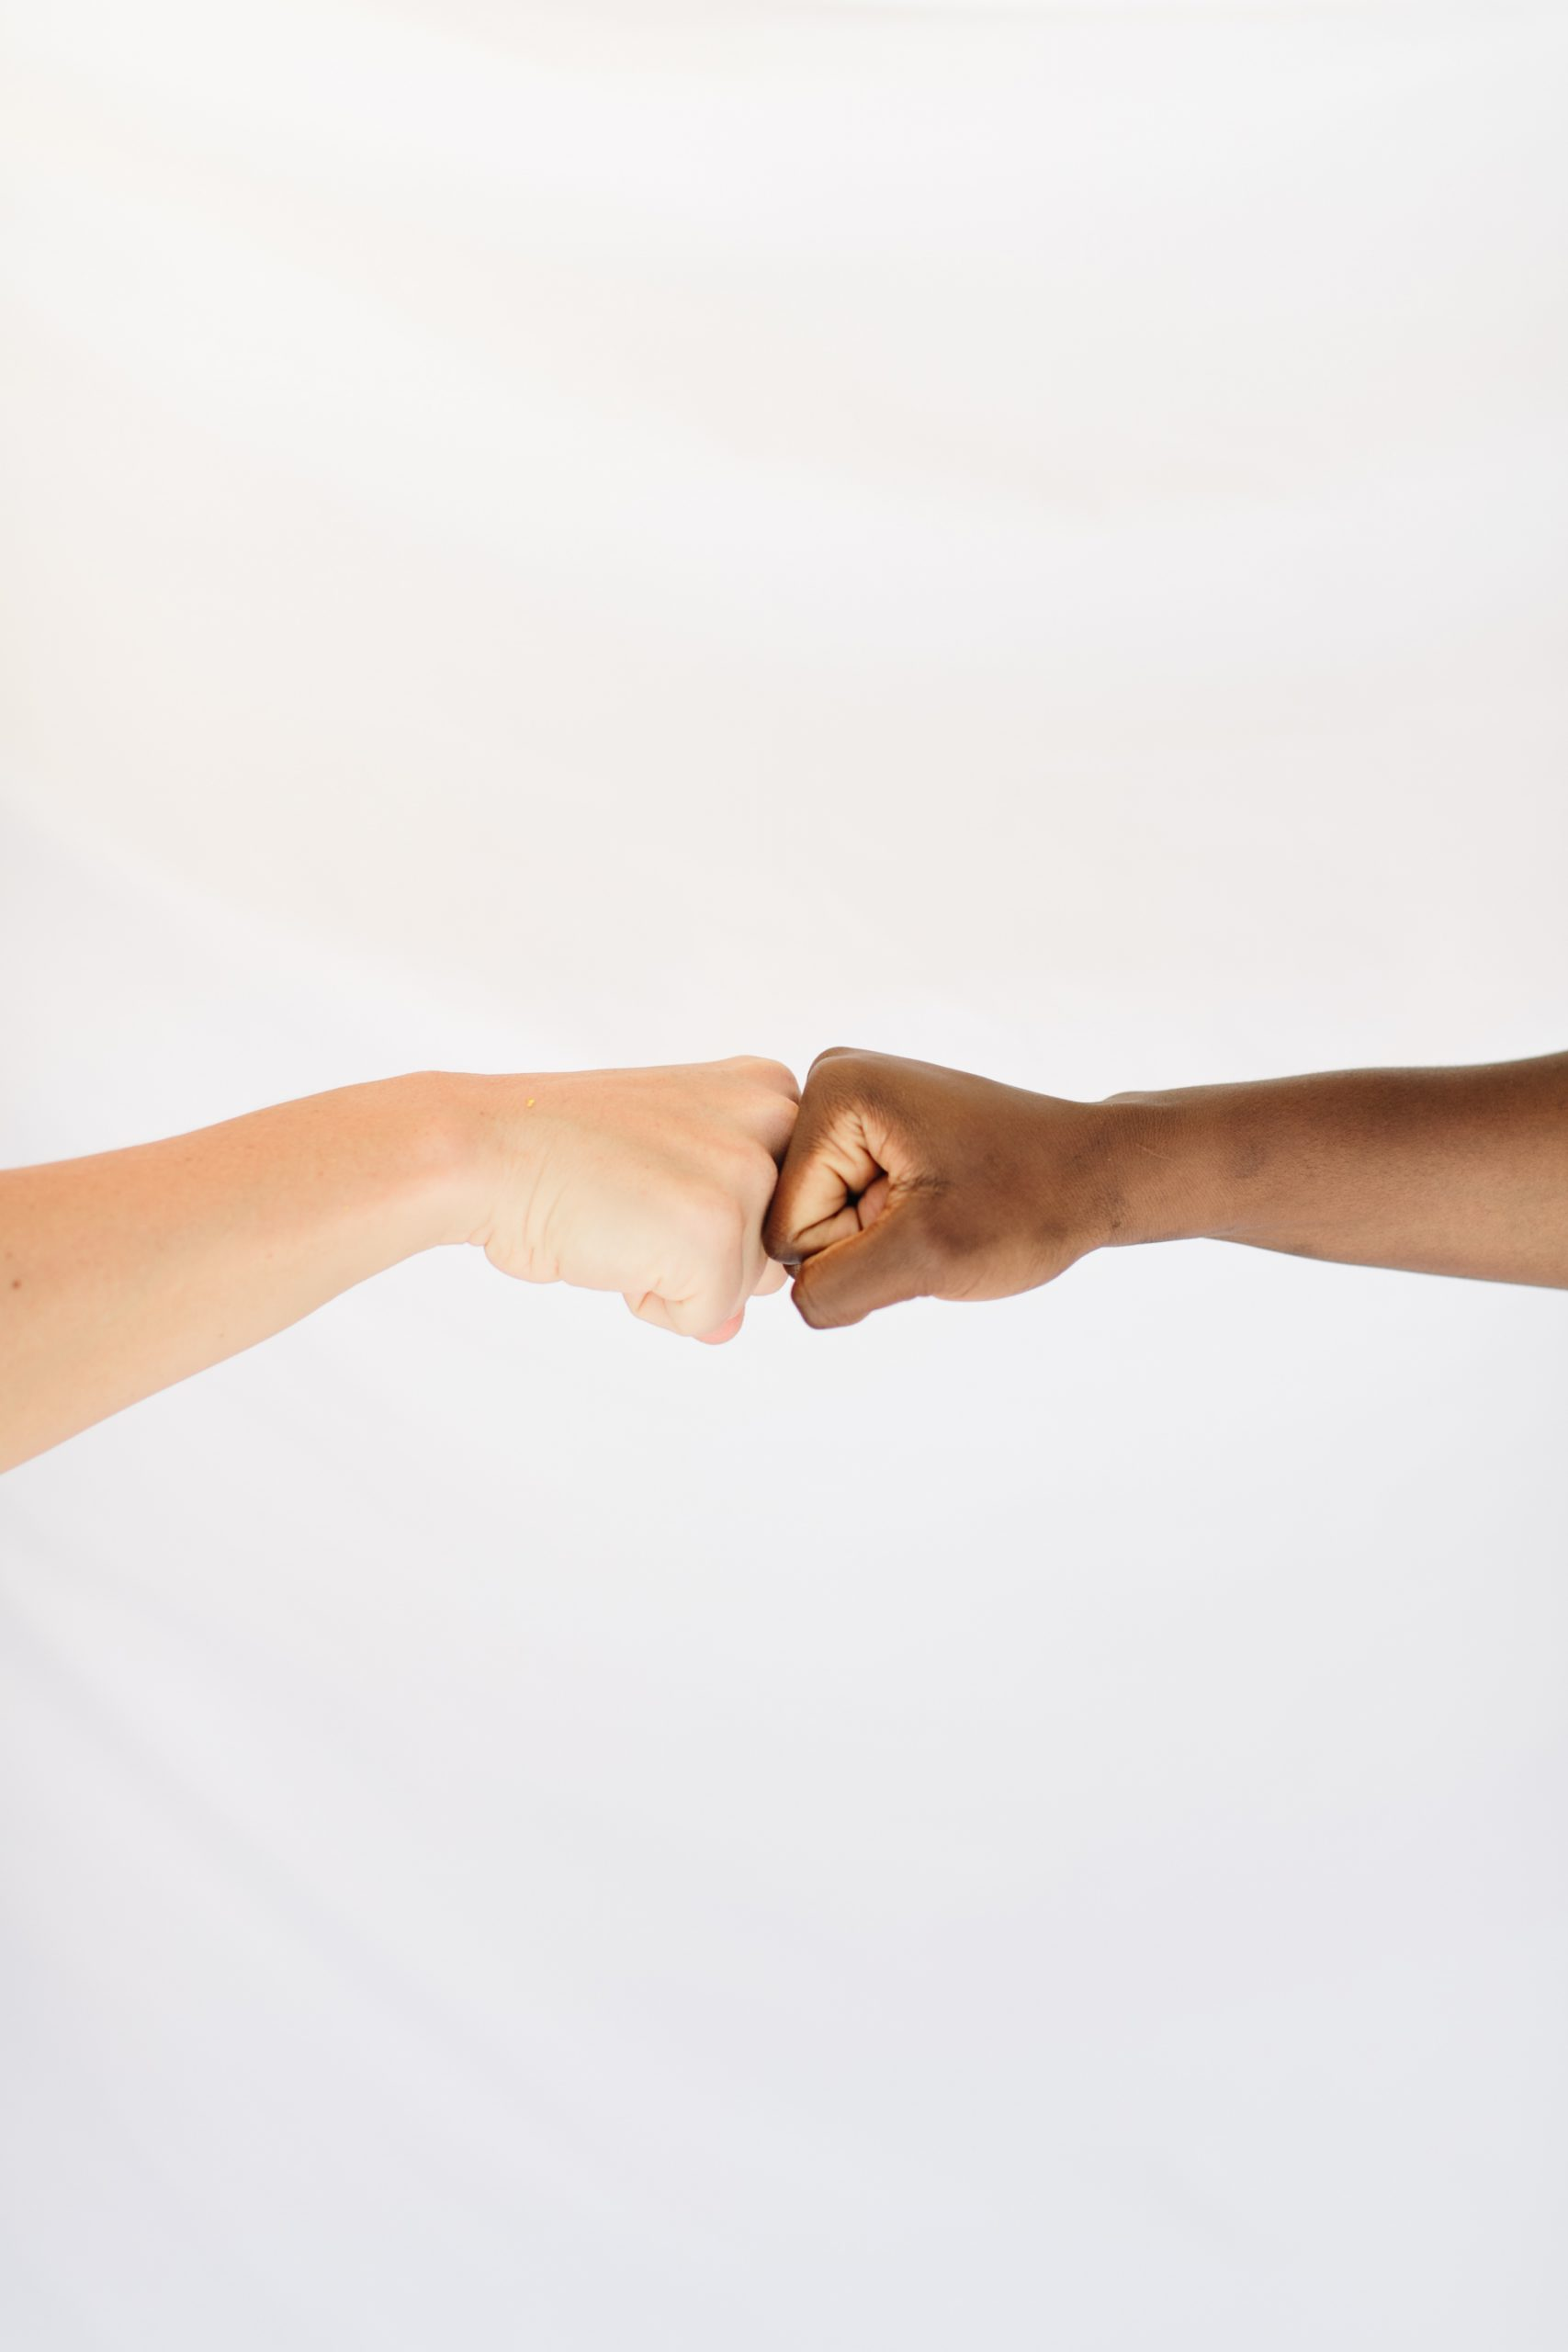 Fist bumping between a white and a black hand